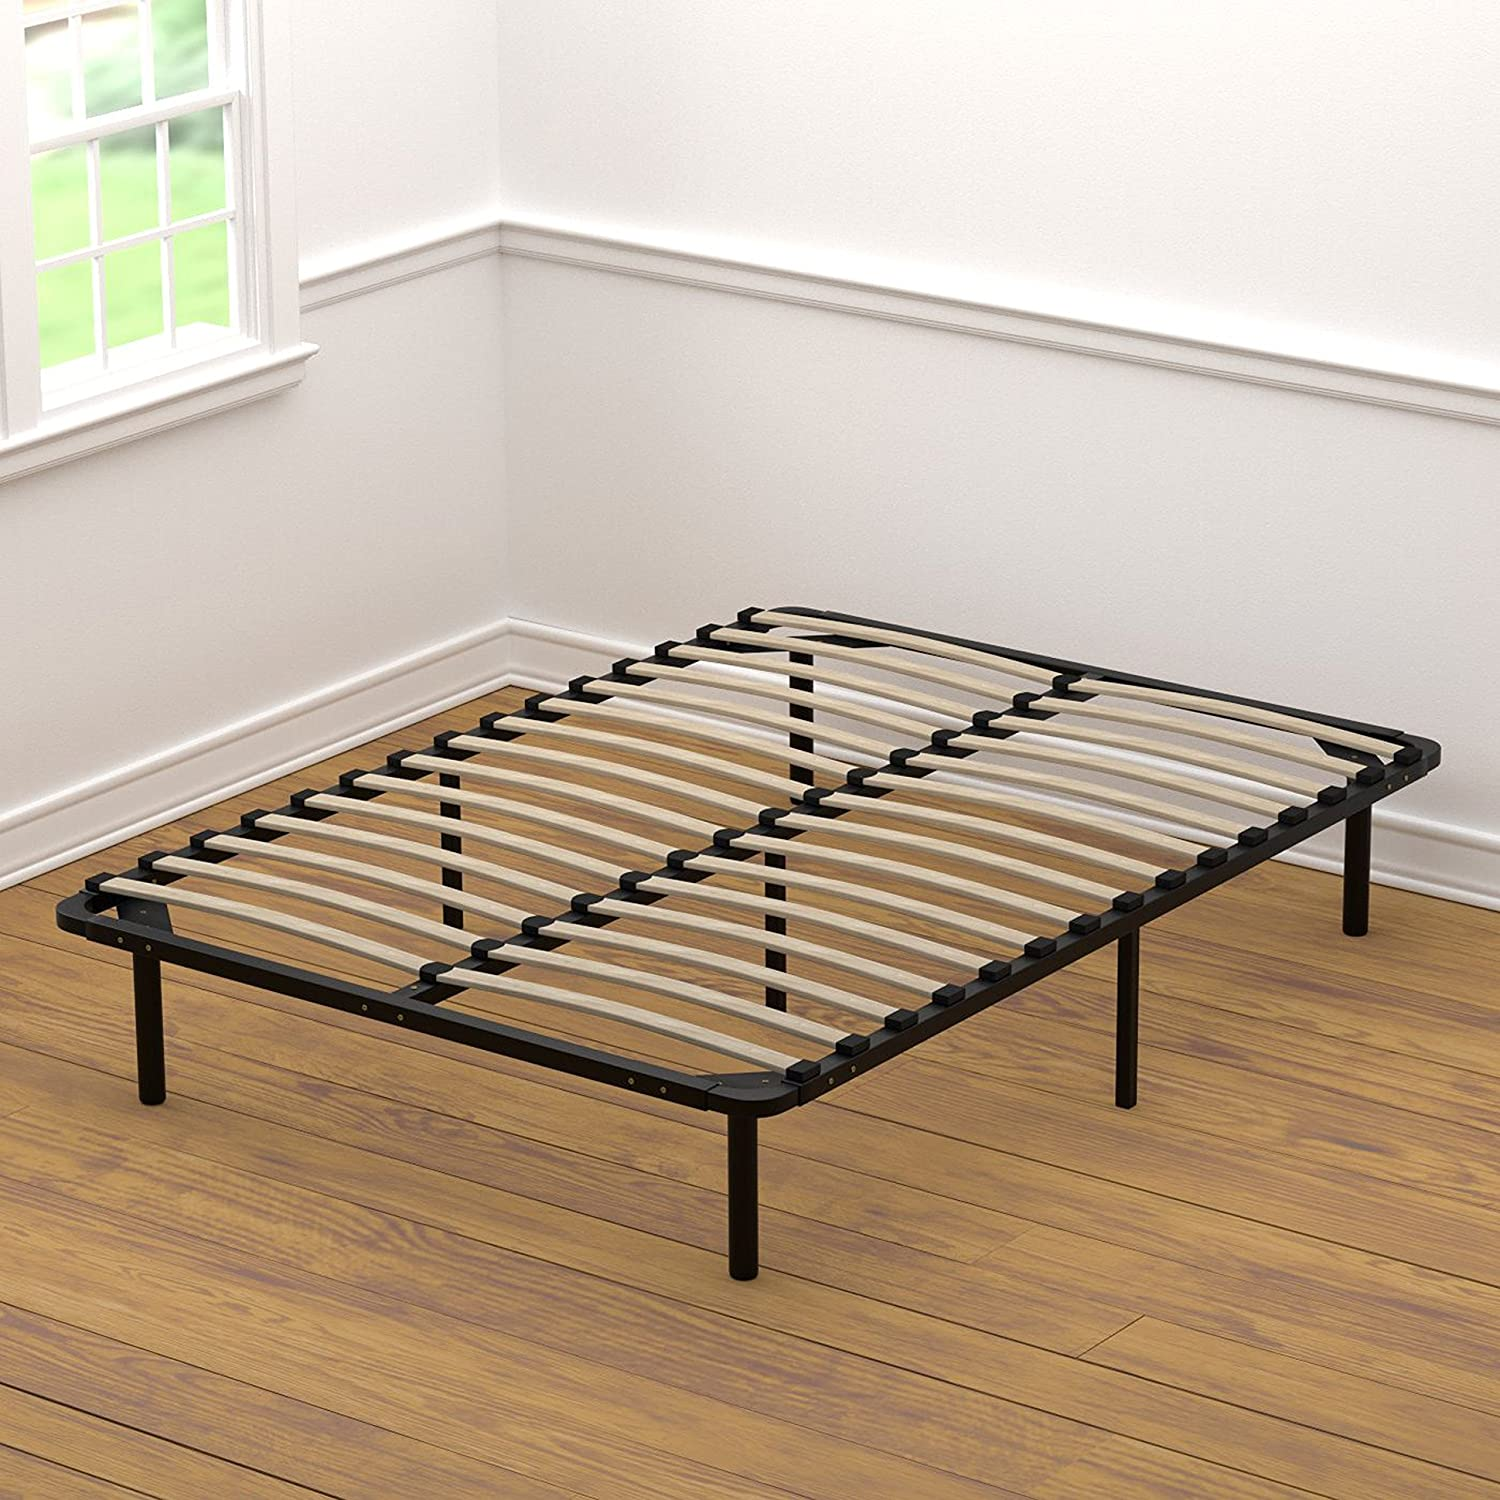 Full Bed Frame.Handy Living Platform Bed Frame Wooden Slat Mattress Foundation Box Spring Replacement Full